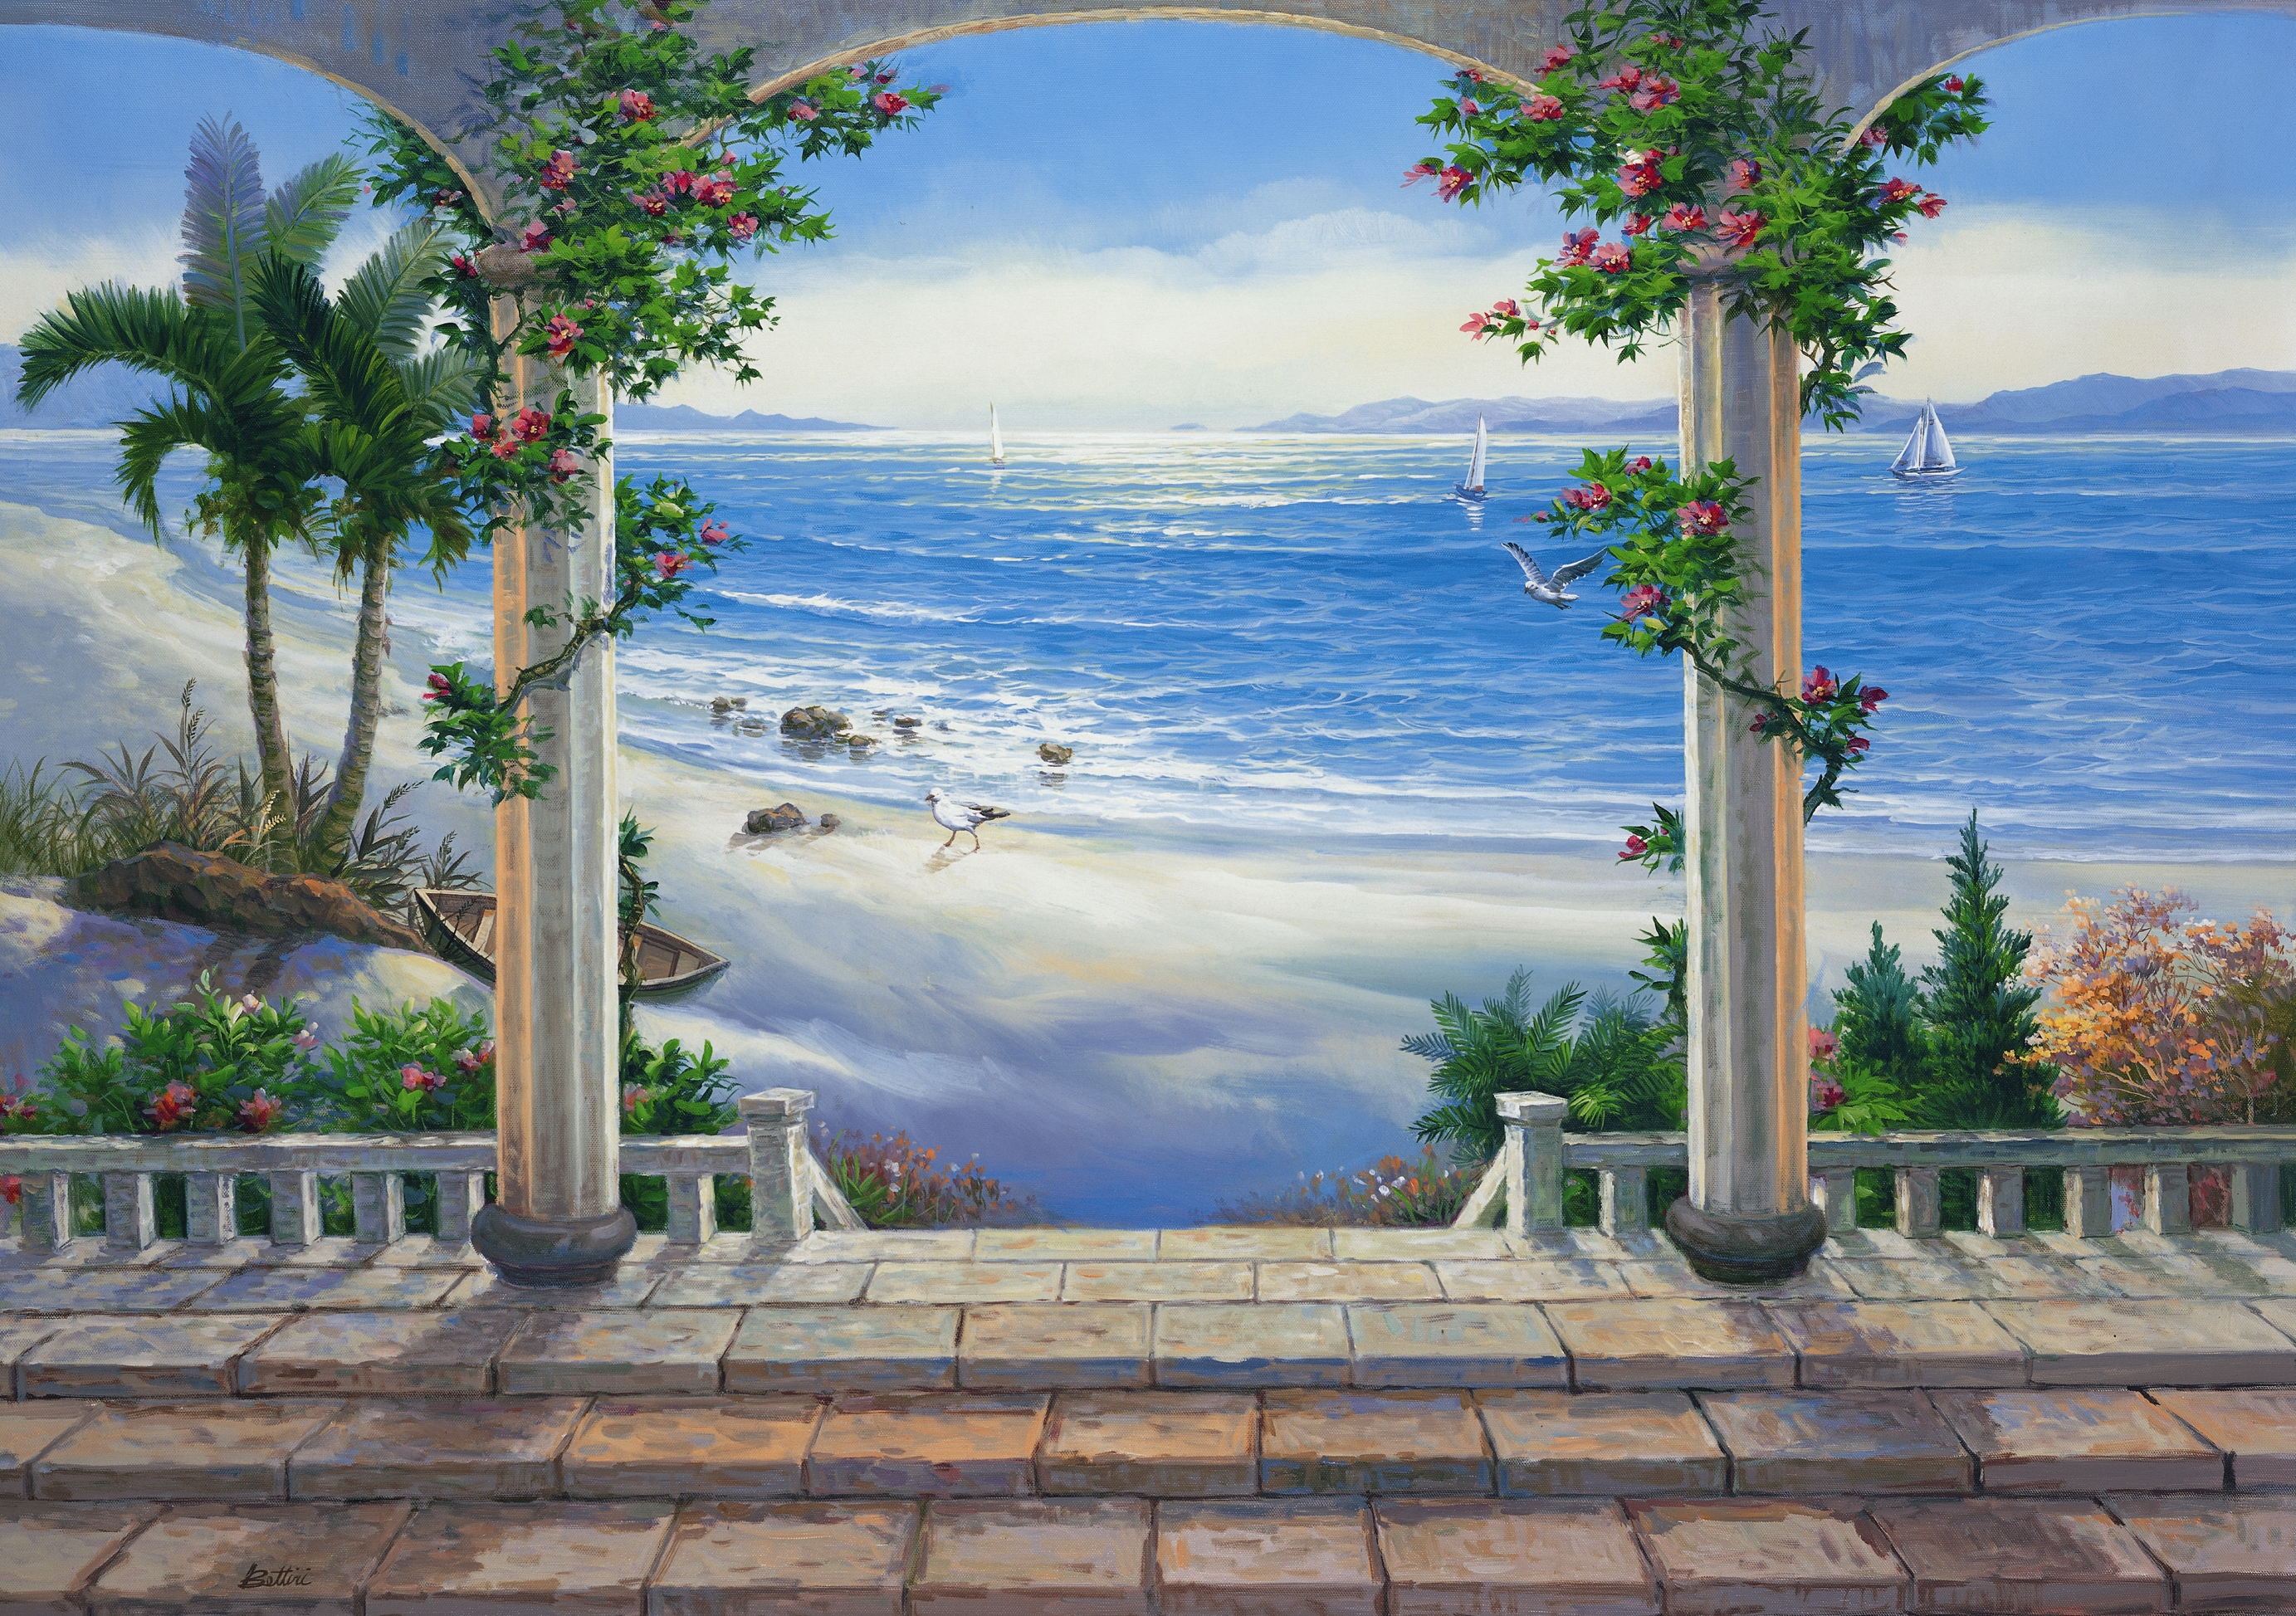 barilochehousecom-superb-wall-murals-for-bedroom-7-ocean-wall-mural-2766-x-1947